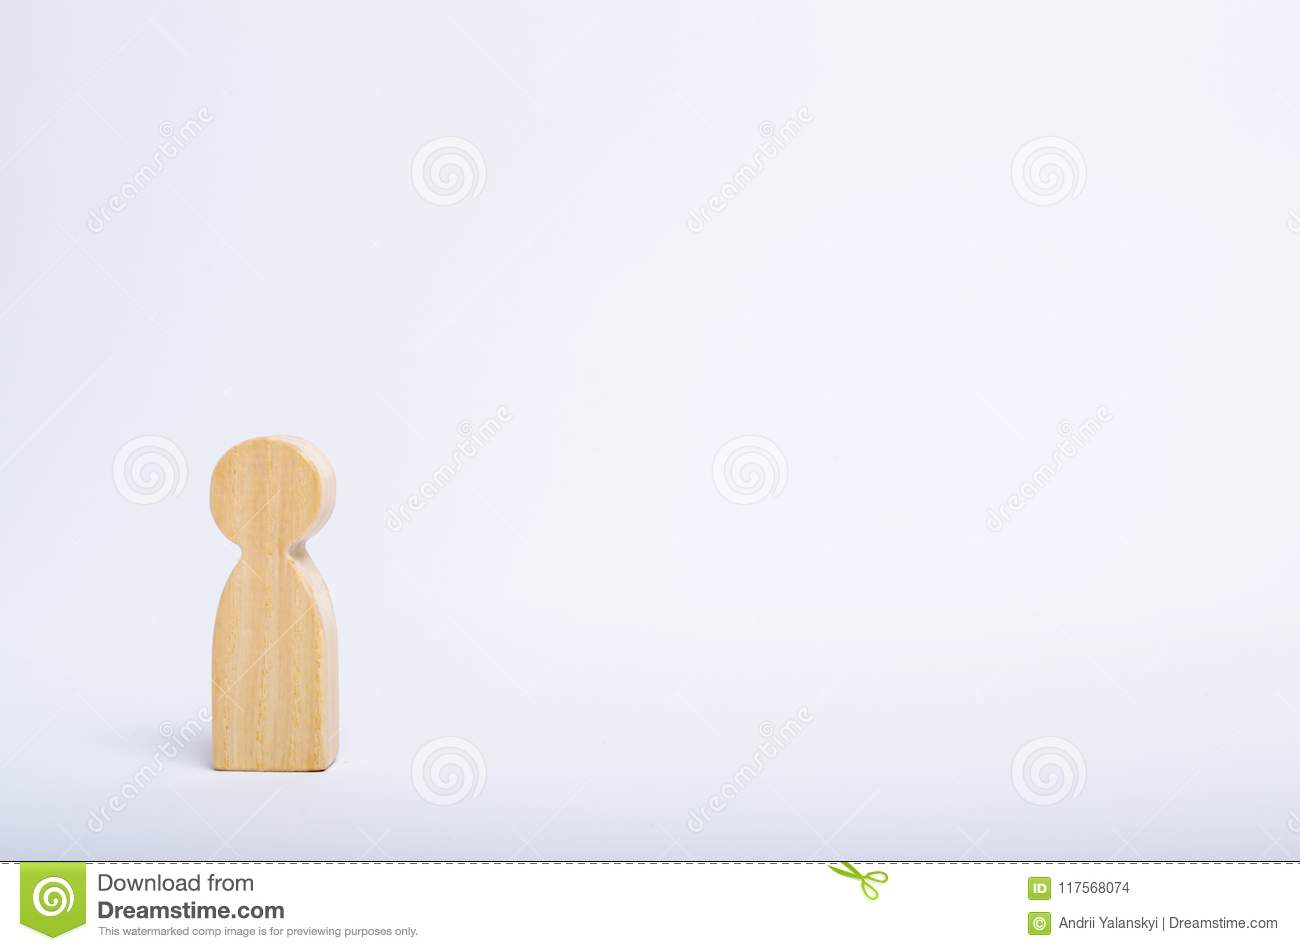 A lone wooden human figure stands on a white background. A person is waiting, standing and waiting. Style of minimalism, space